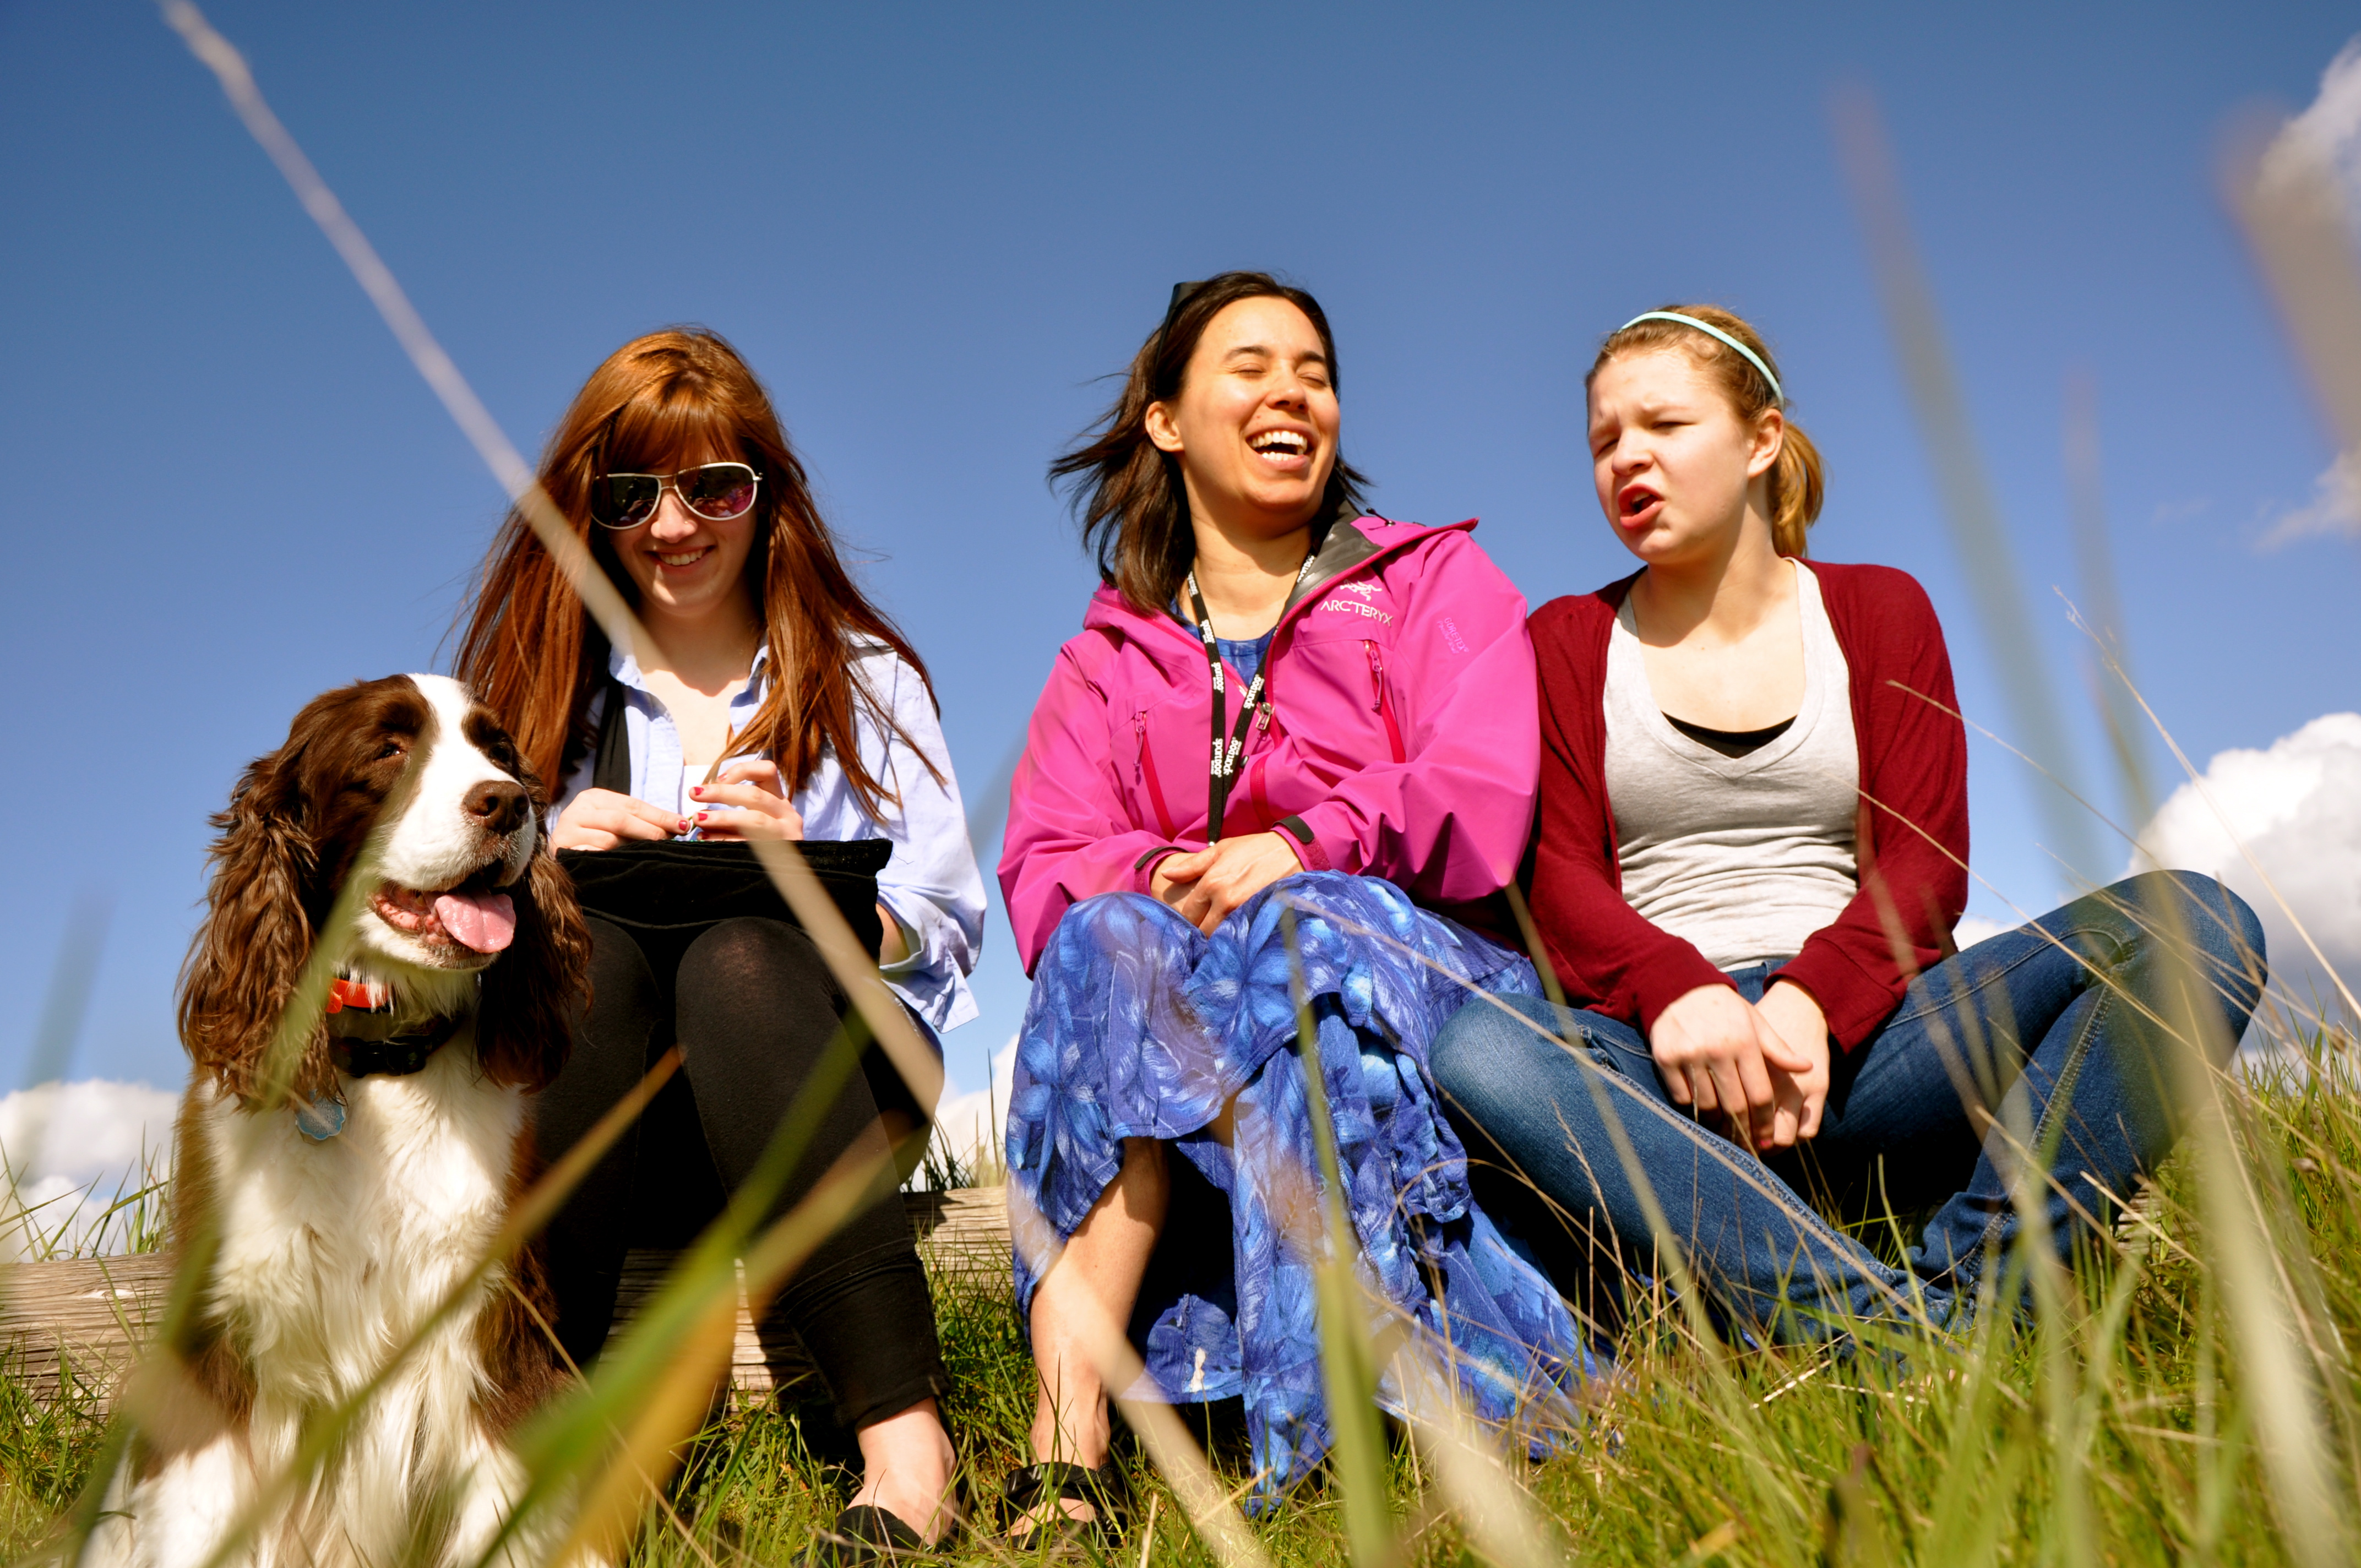 Joy in the Sun. Family Outing at Discovery Park, Seattle. L2R: Jolie the Doggie, Morgan, Kristina, & Kate. Saturday 30 April 2011.